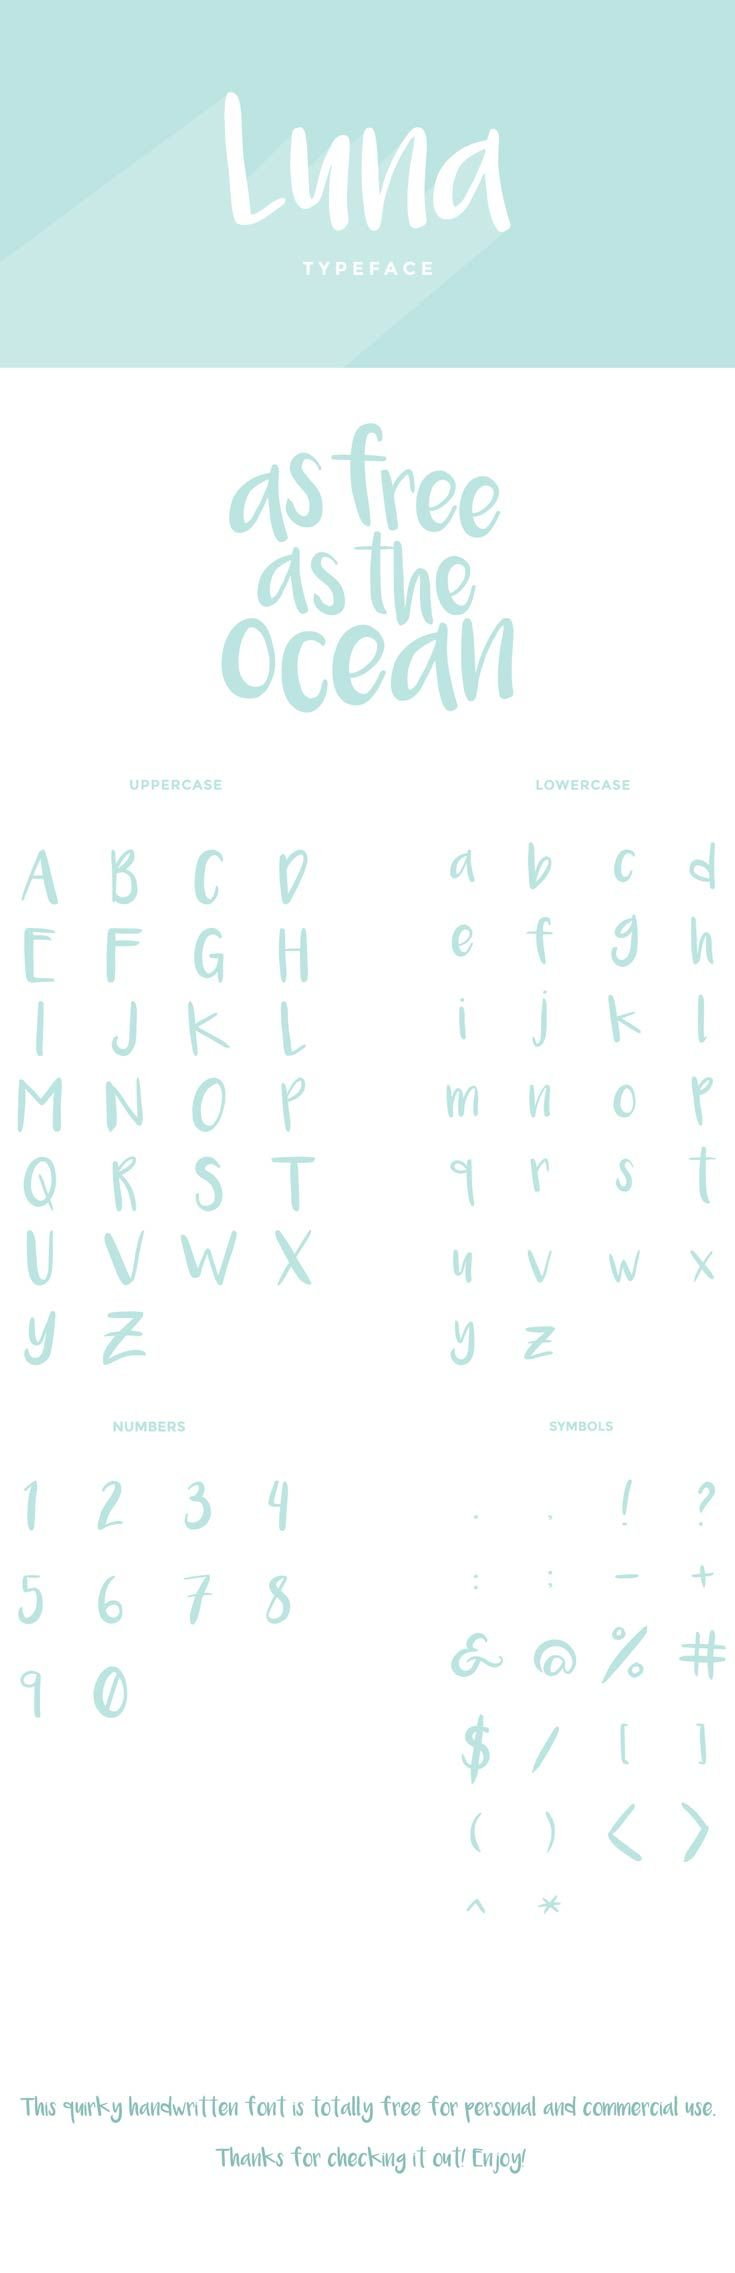 Free Luna Brush #Font from Amanda Leeson, Luna is a Sweet Font, you can use it as a logo, badge, insignia, packaging, headline, poster, t-shirt etc. via @creativetacos